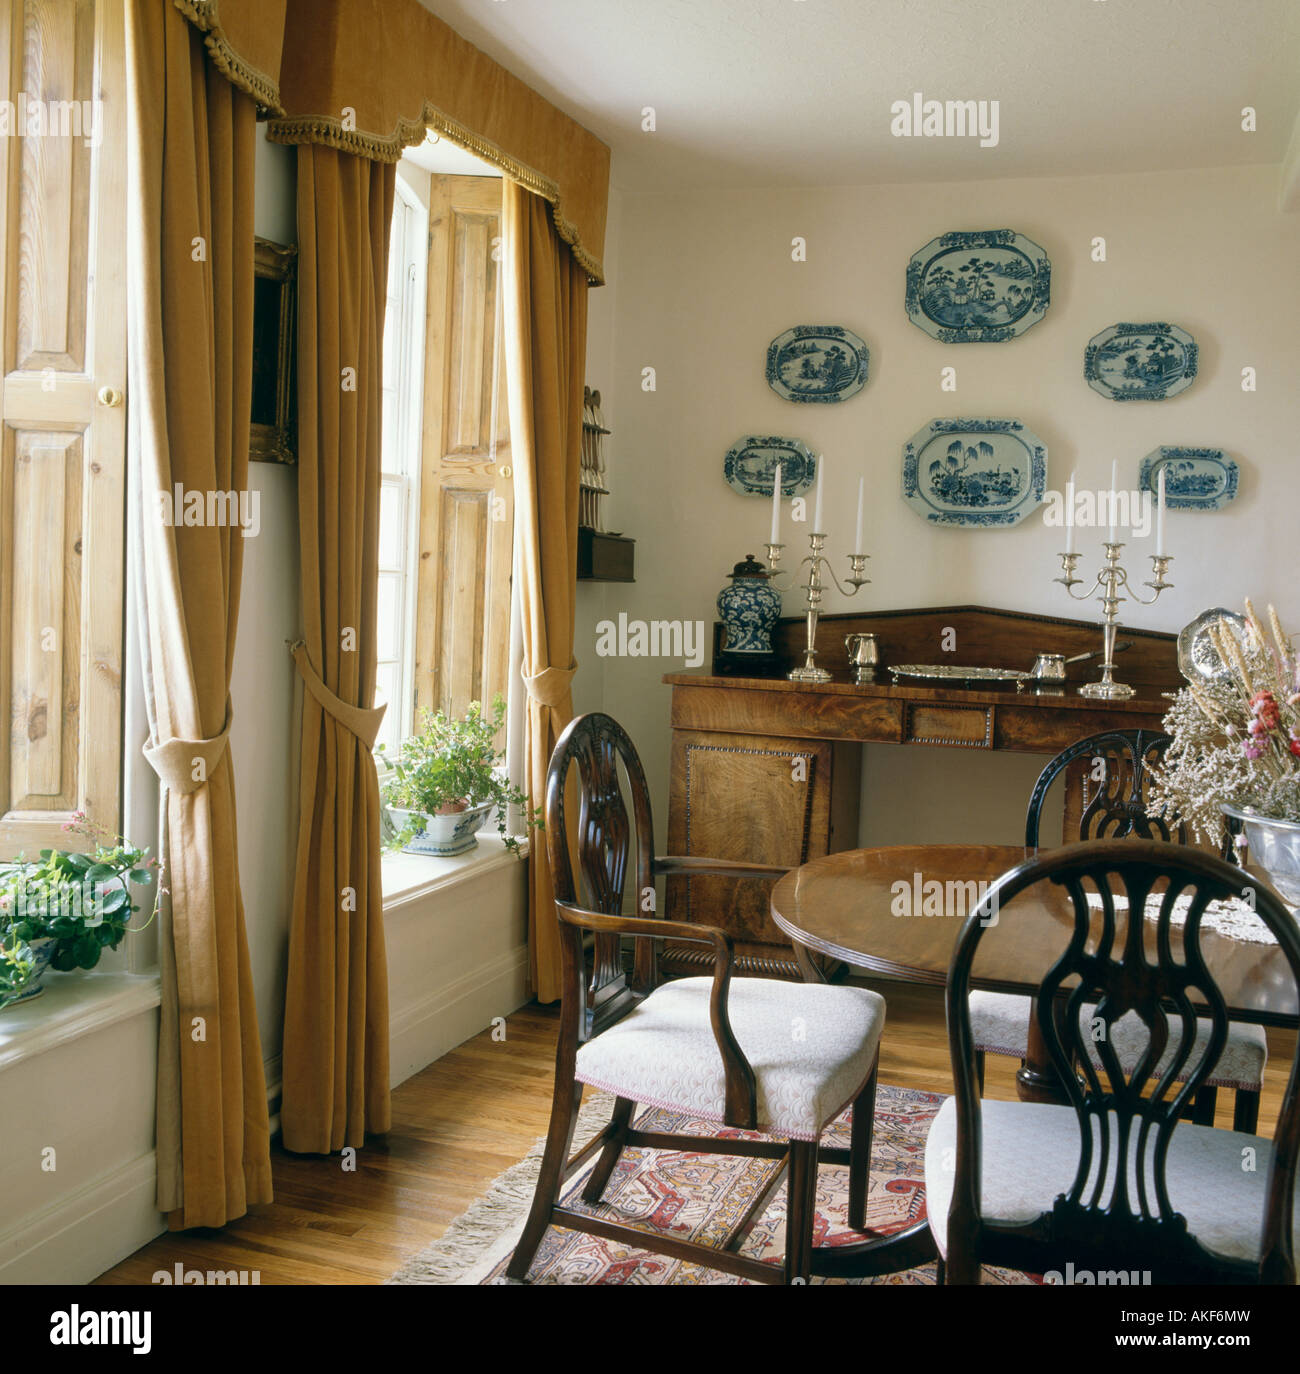 Blue And White Plates Above Antique Sideboard In Country Dining Room With Gold Velvet Curtains Wooden Shutters